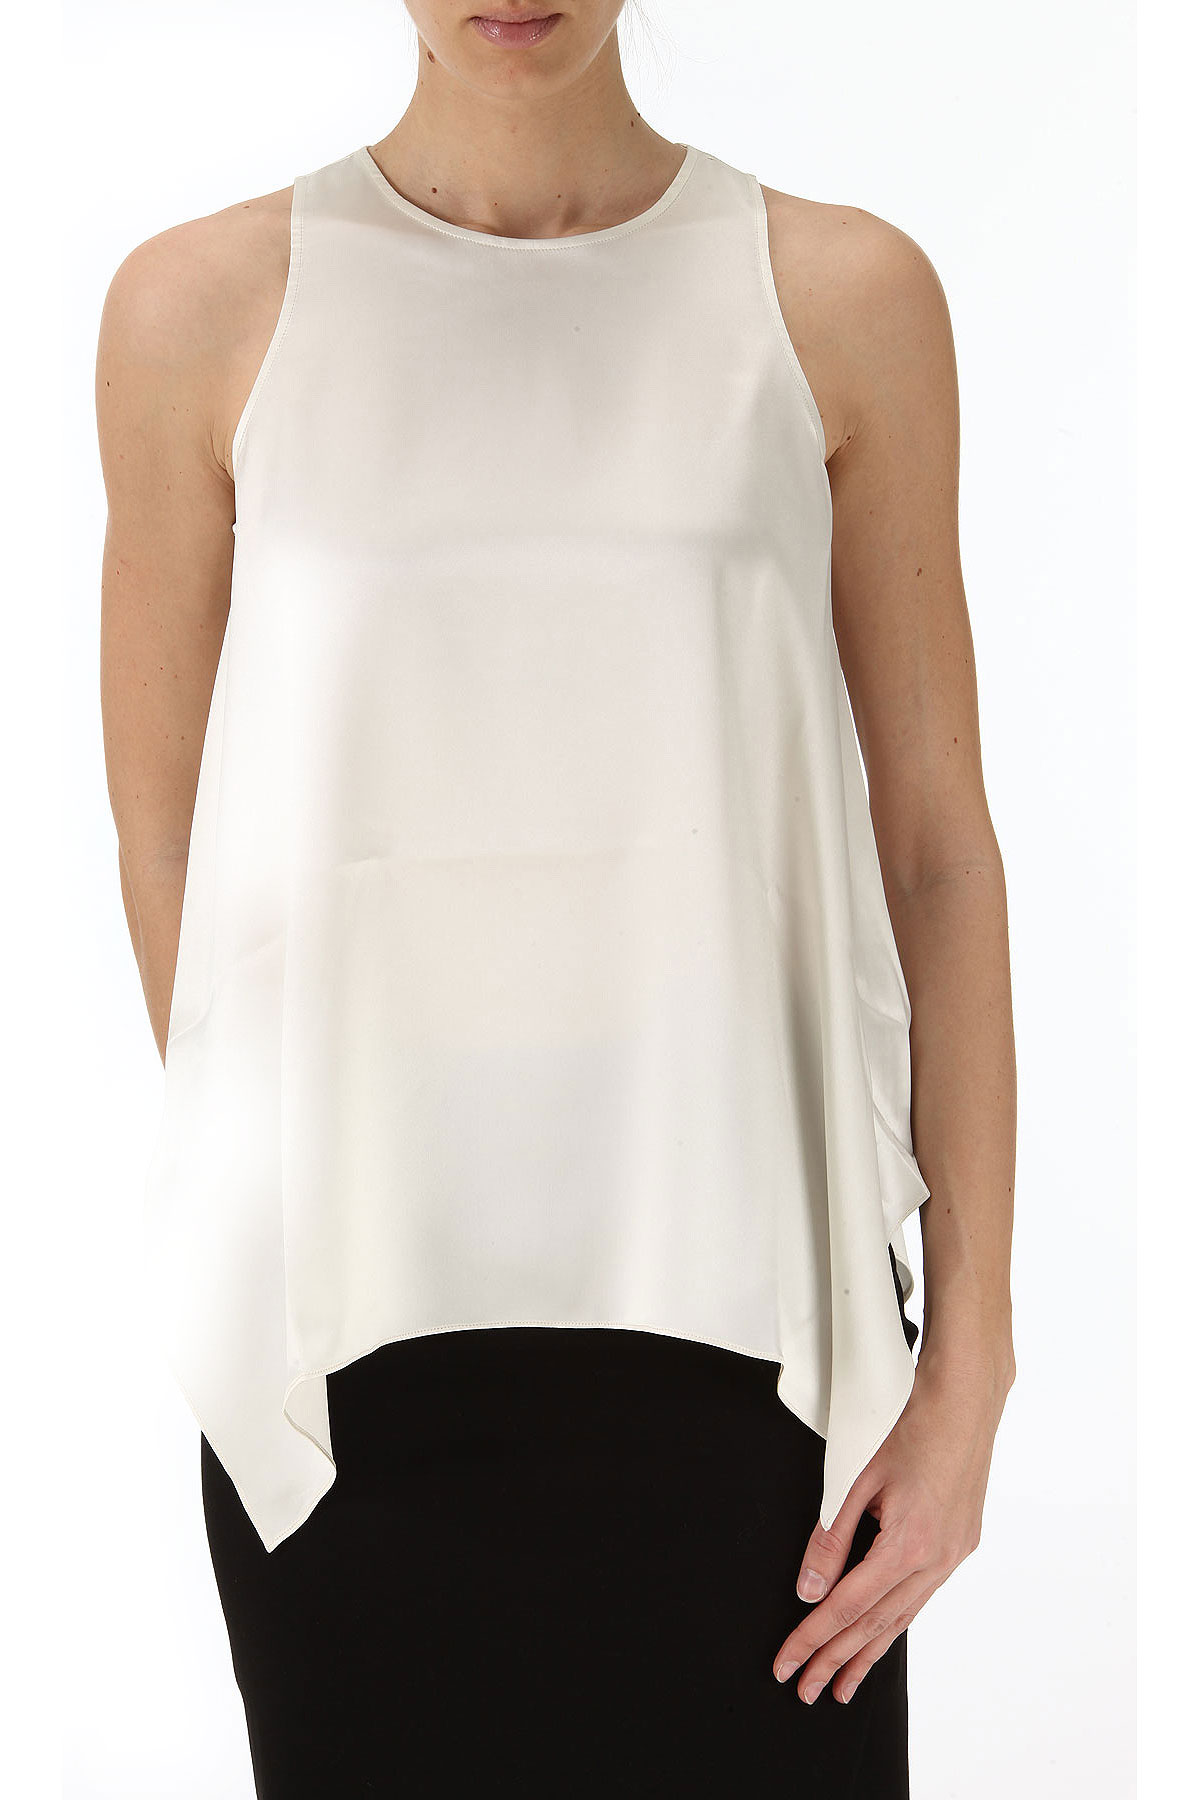 Brunello Cucinelli Top for Women On Sale in Outlet, Vanilla, Silk, 2017, 6 8 USA-352149